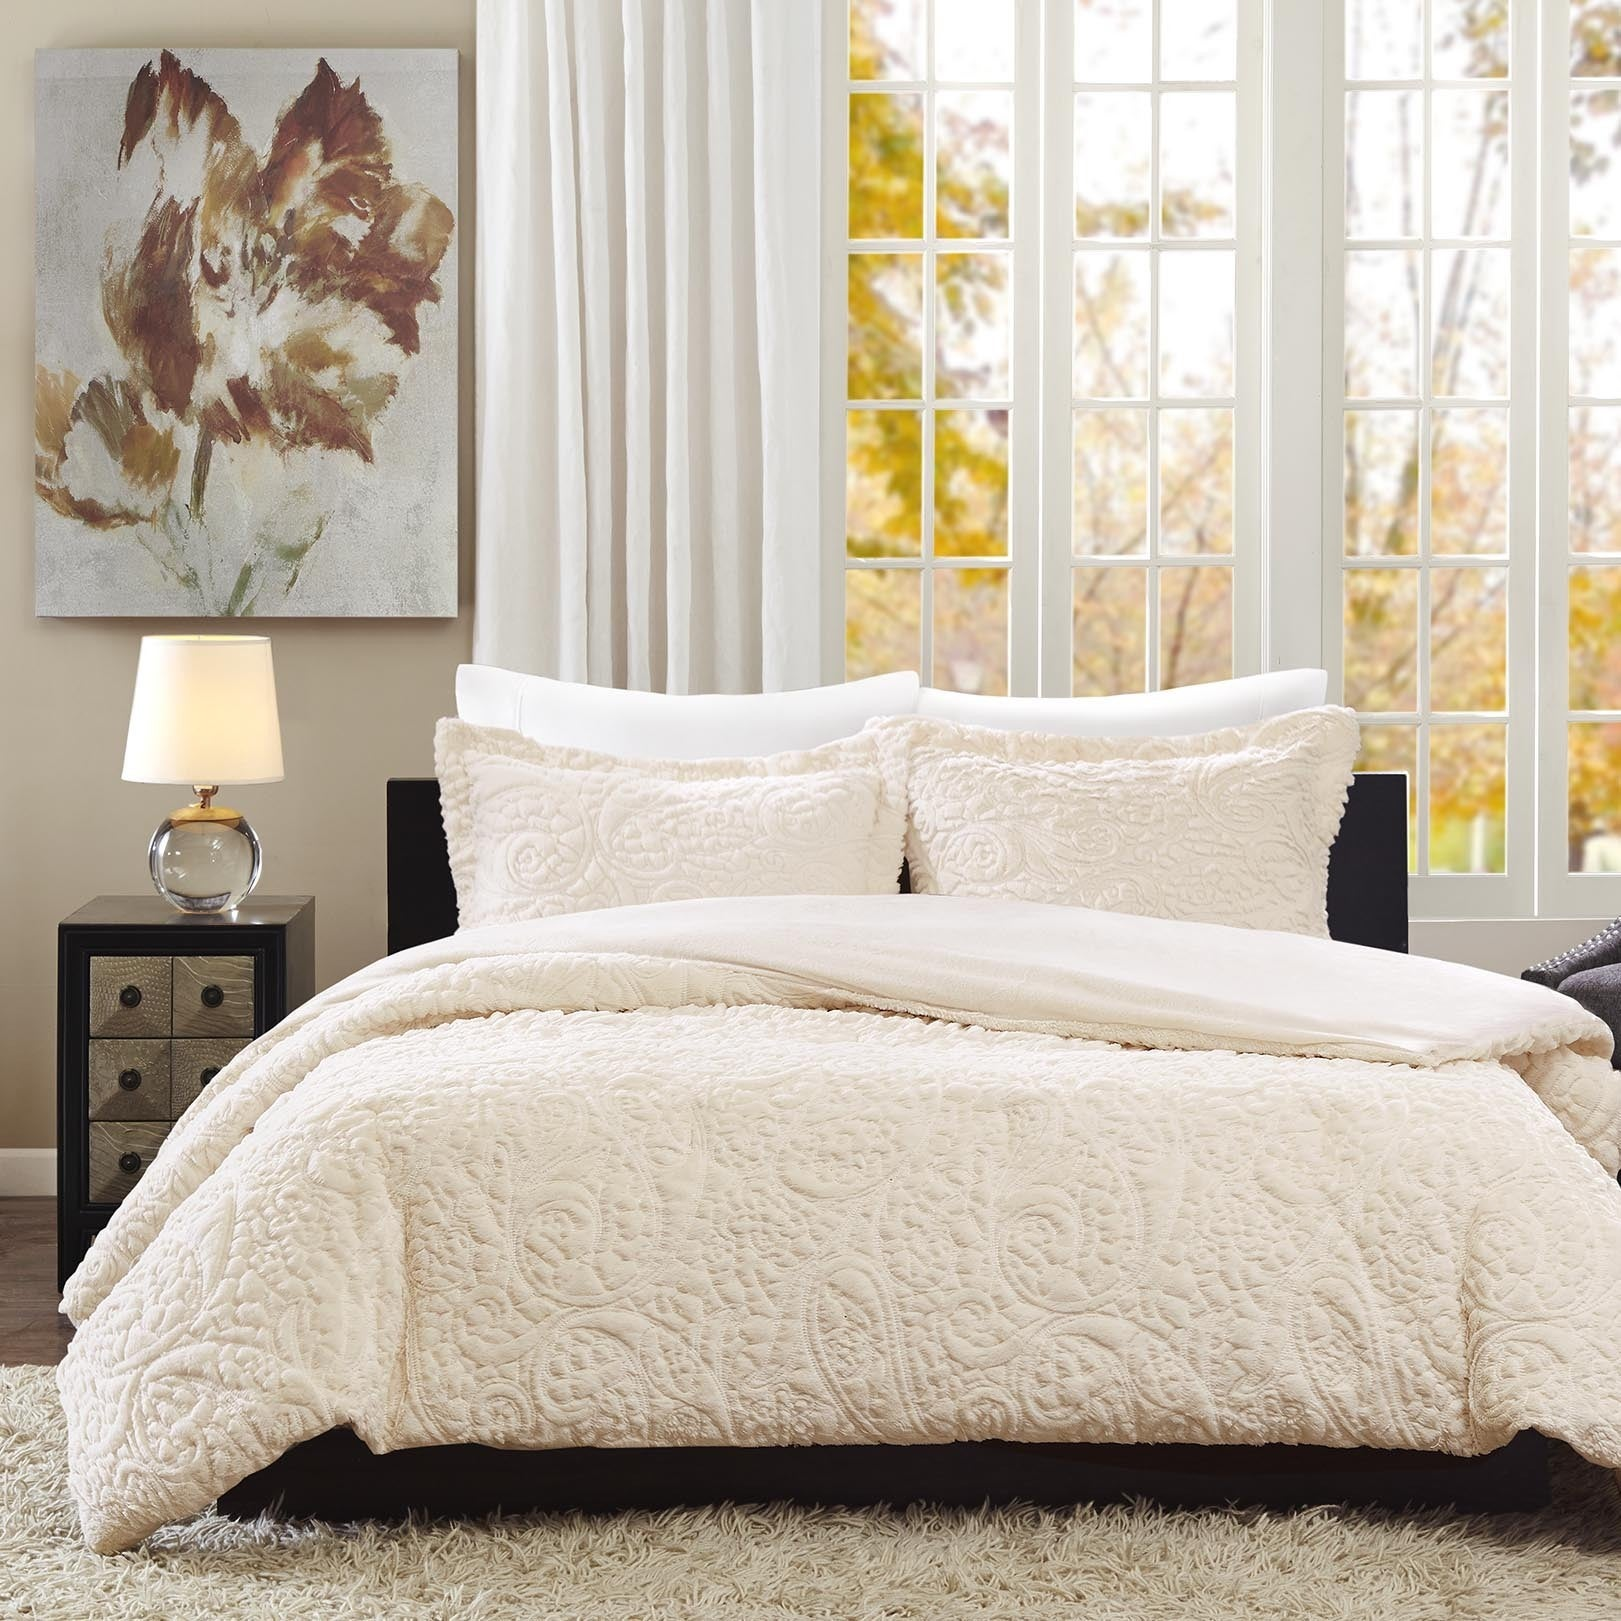 of bed set eyelet in bag sets ivory photo clearance a x comforter